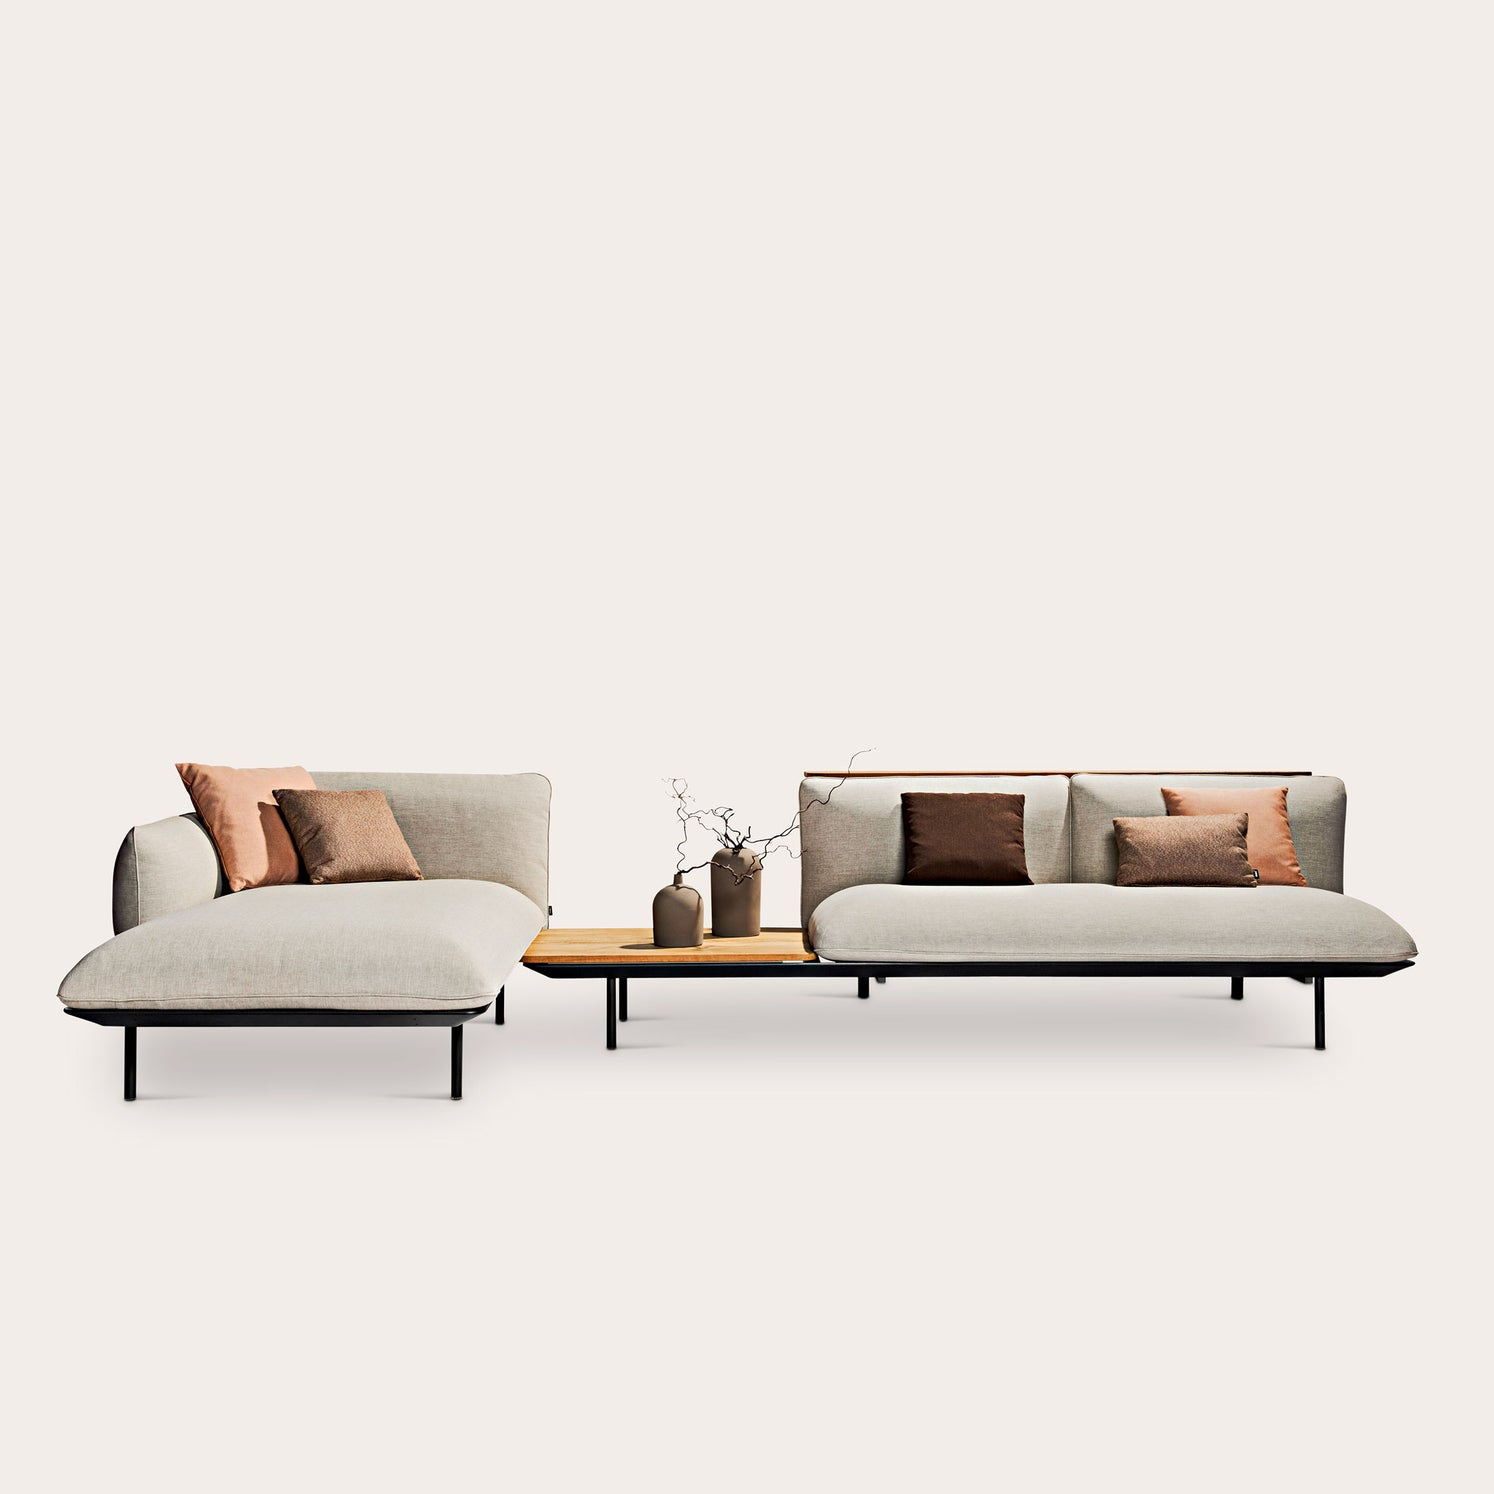 SENJA SOFA Outdoor Studio Segers Designer Furniture Sku: 007-200-11706